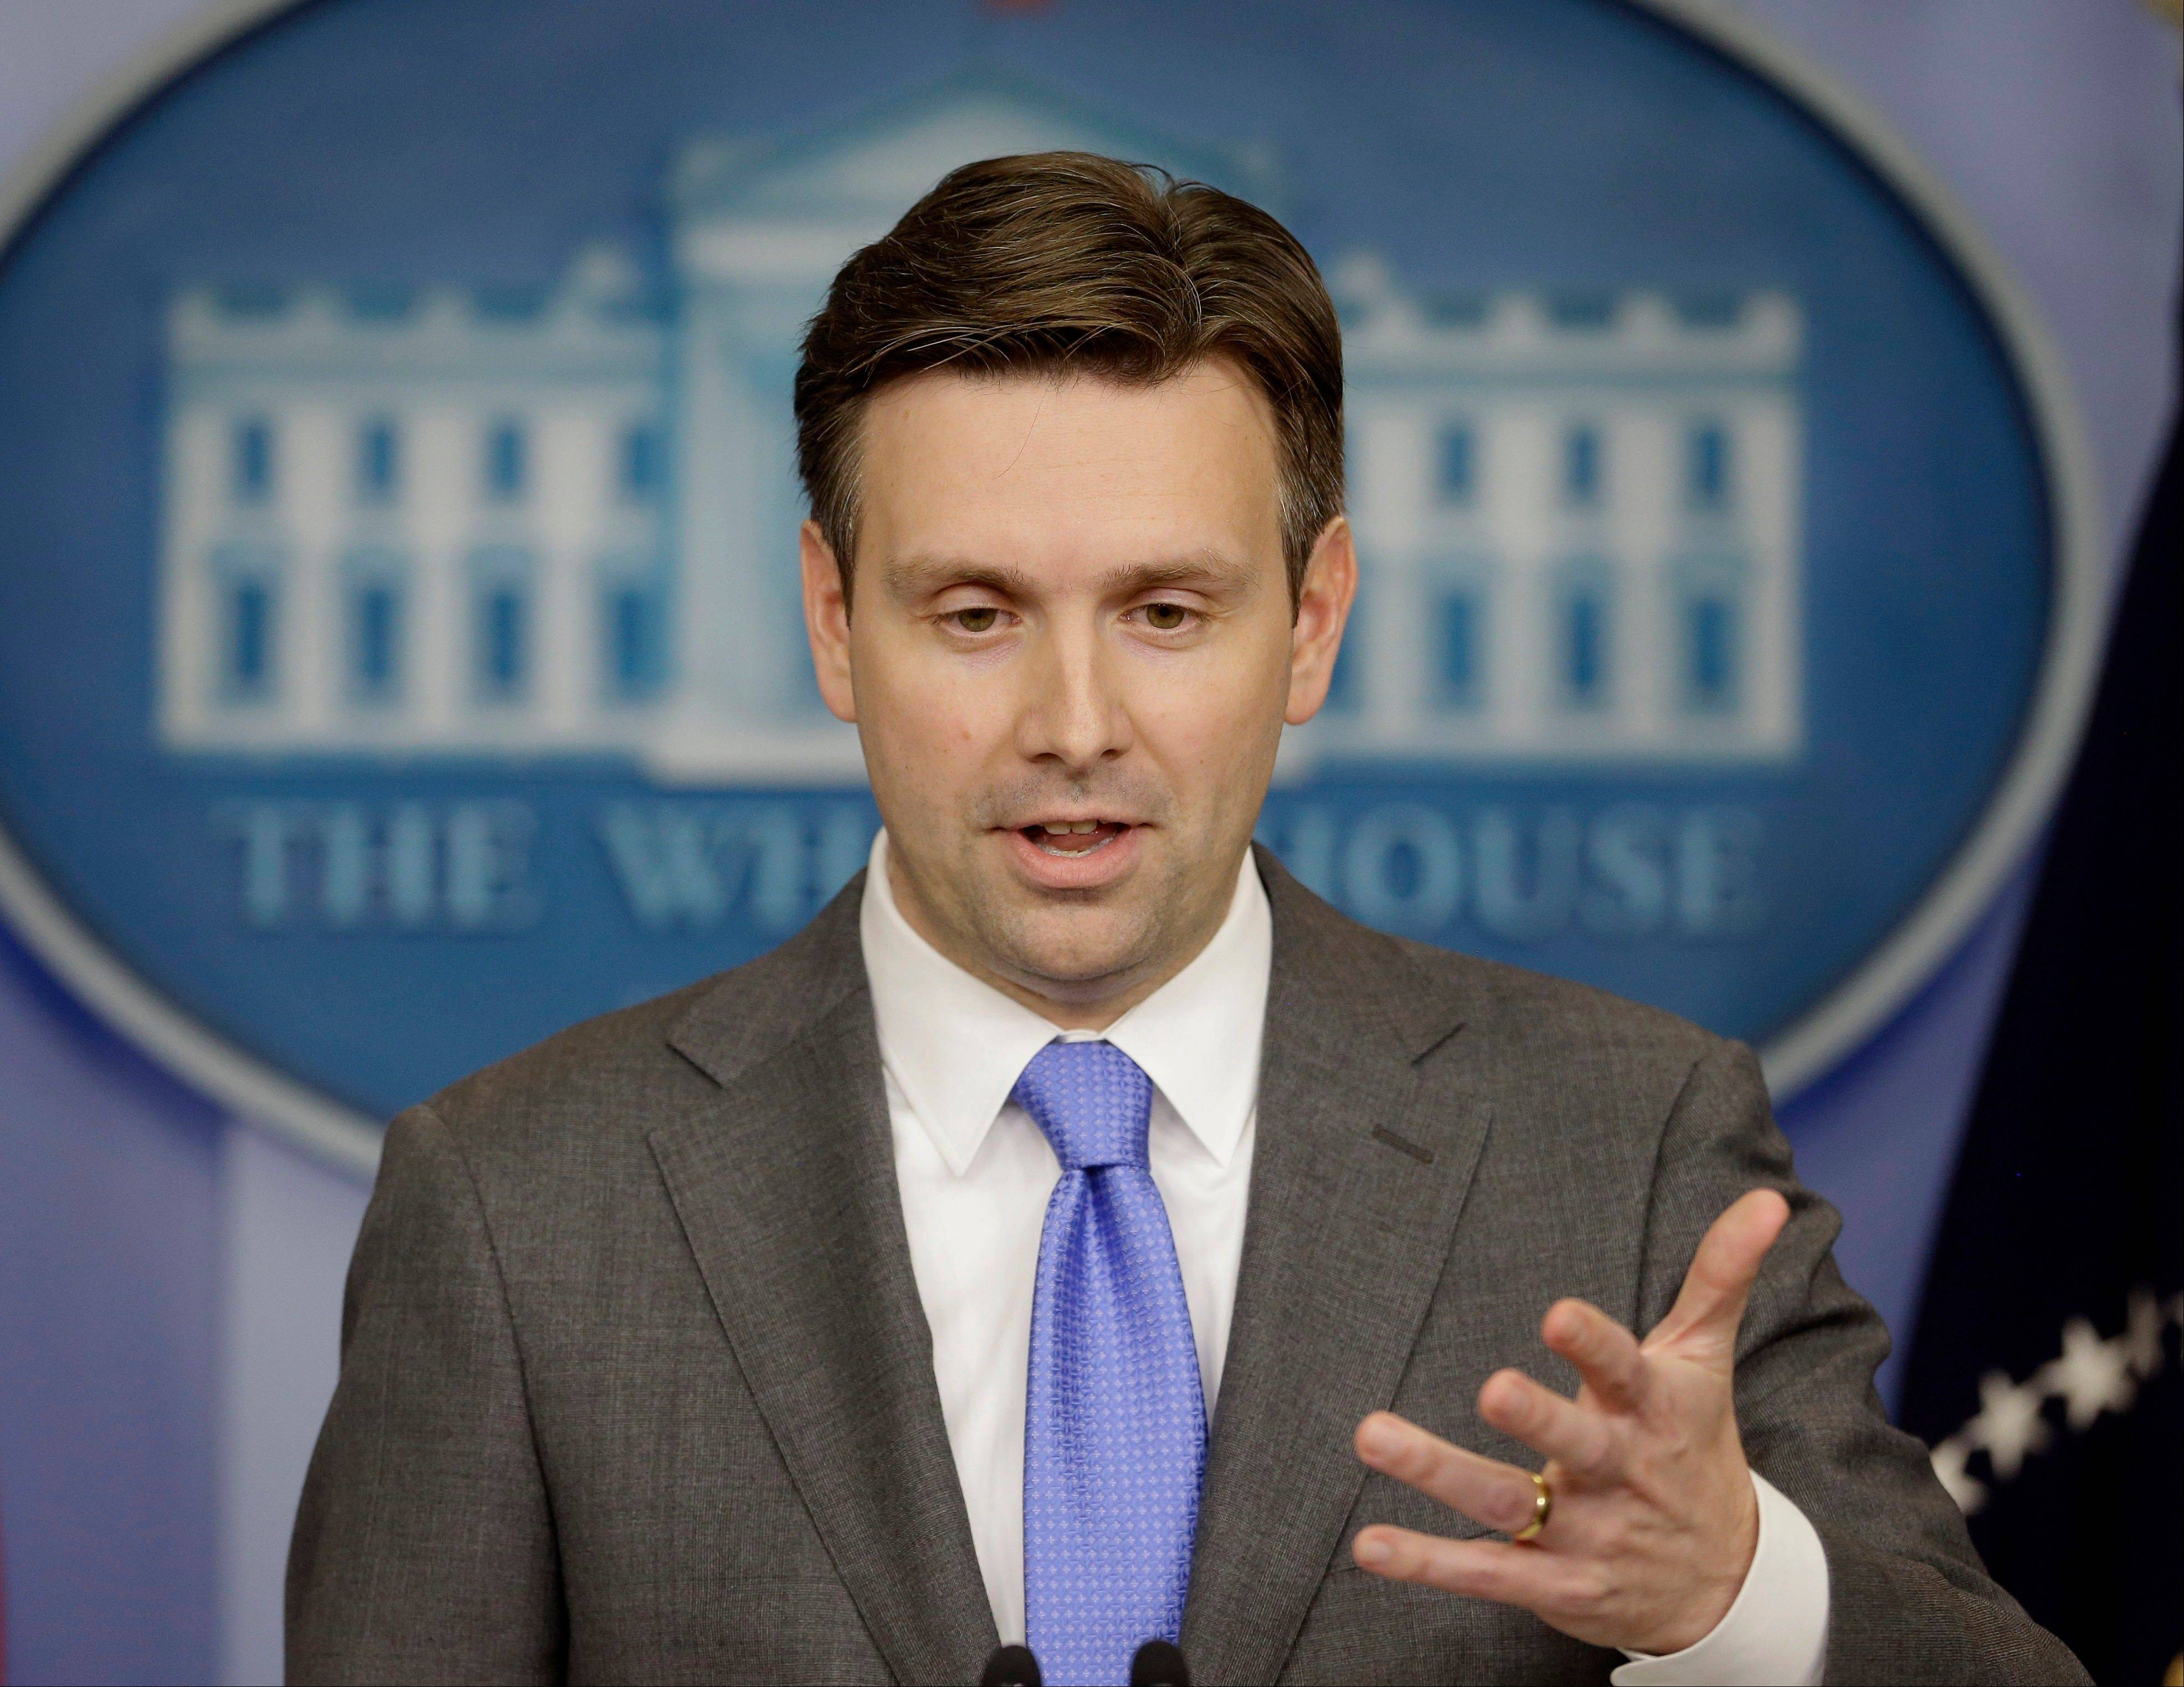 White House principal deputy press secretary Josh Earnest takes a question during the daily news briefing at the White House in Washington, Thursday, Nov. 21, 2013. Earnest responded to a letter submitted by the White House Correspondents Association (WHCA) and other new organizations accusing top officials of blocking access to President Barack Obama and of substituting its own �visual press release�.